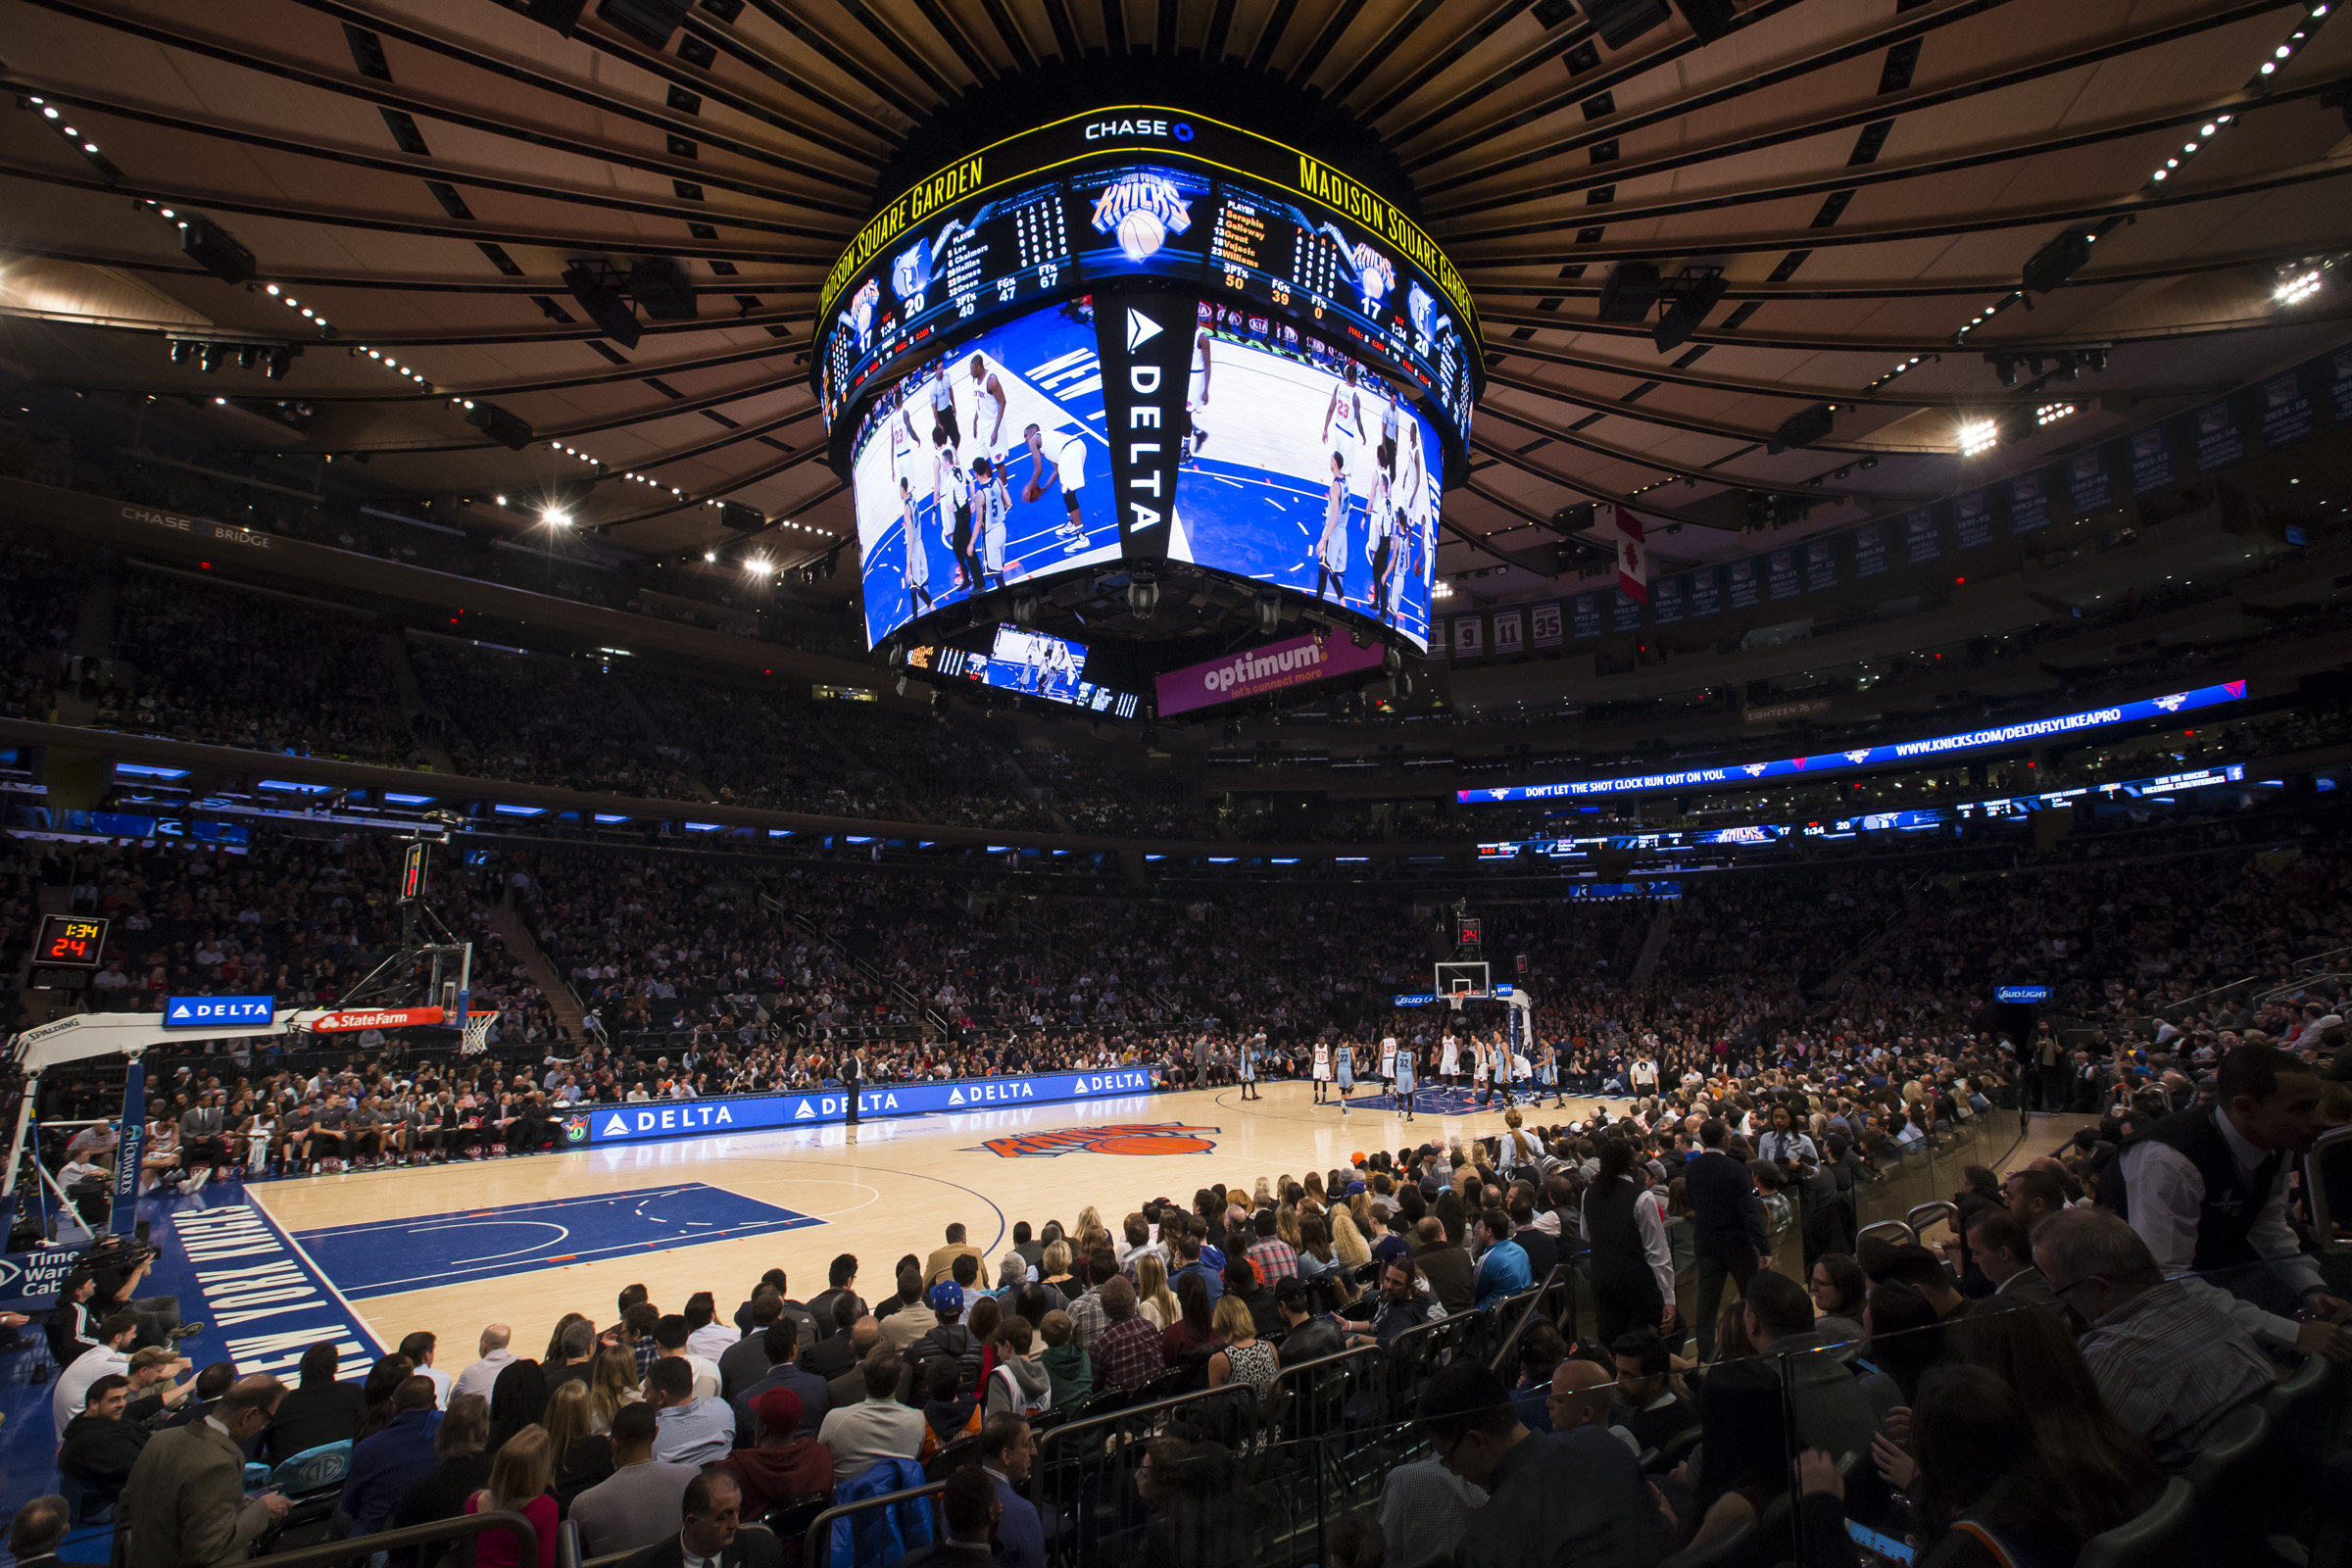 Delta Renews Expands Signature Partnership With Madison Square Garden Company And Msg Networks